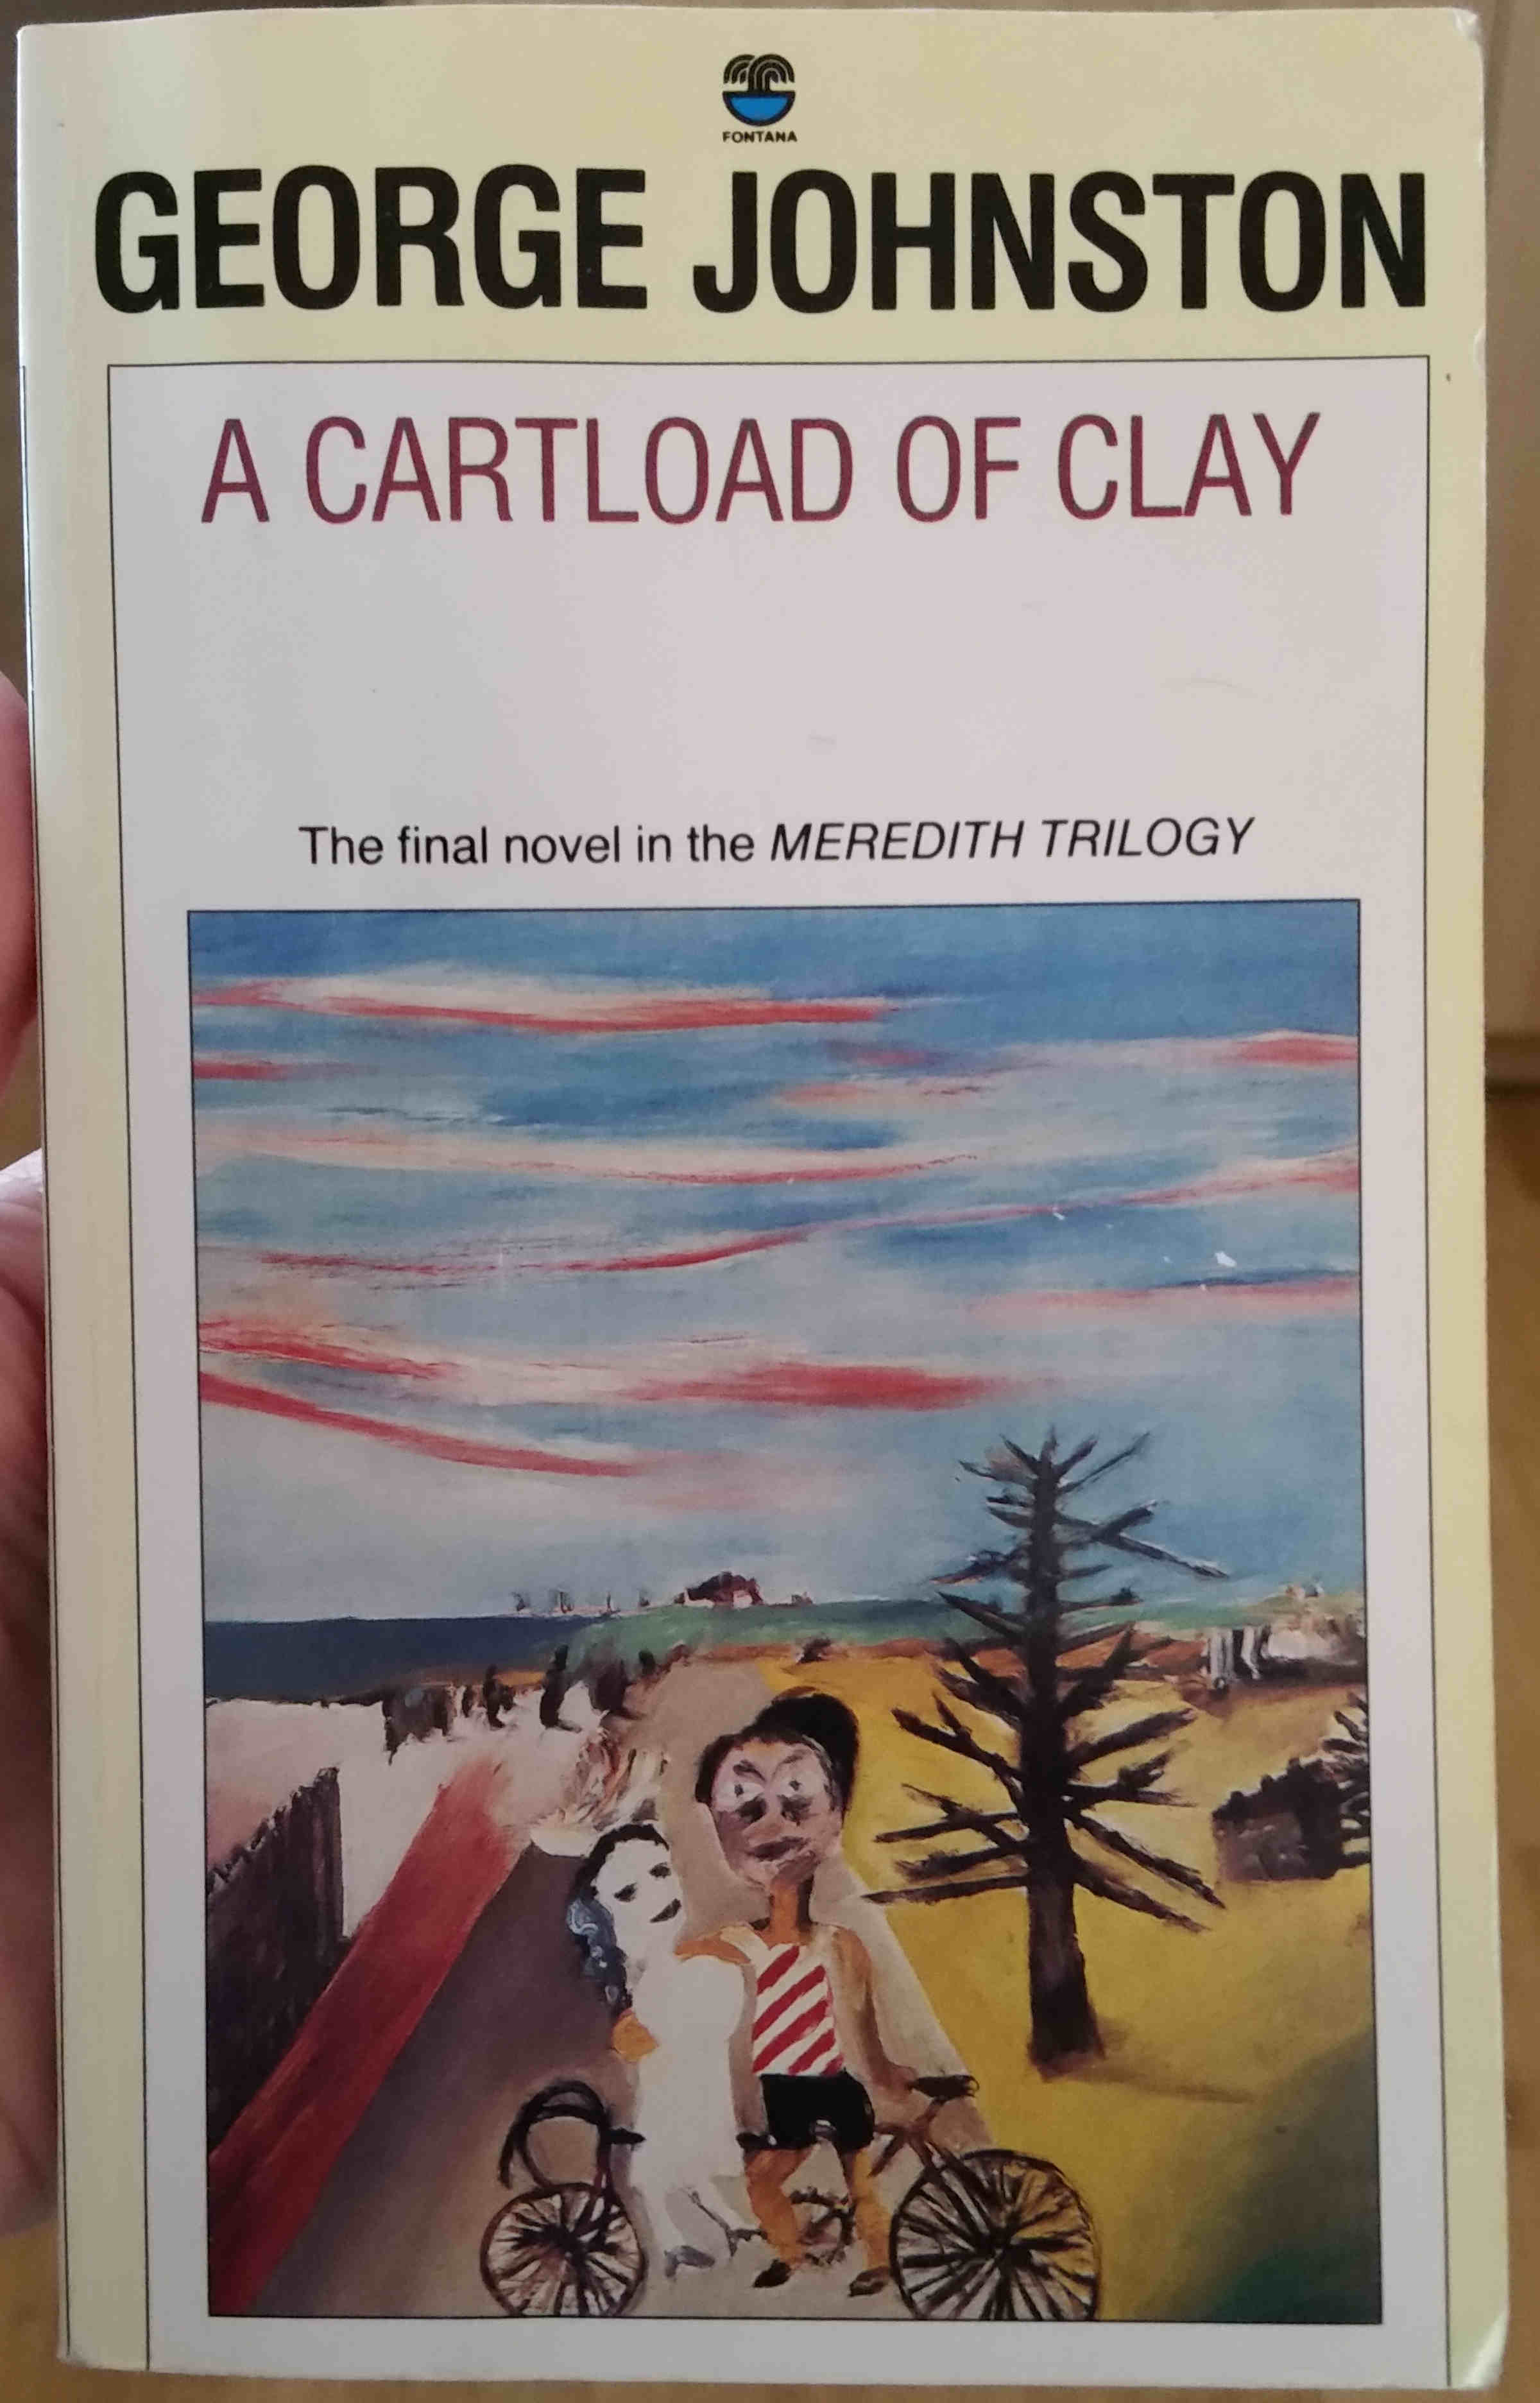 A Cartload of Clay – George Johnston